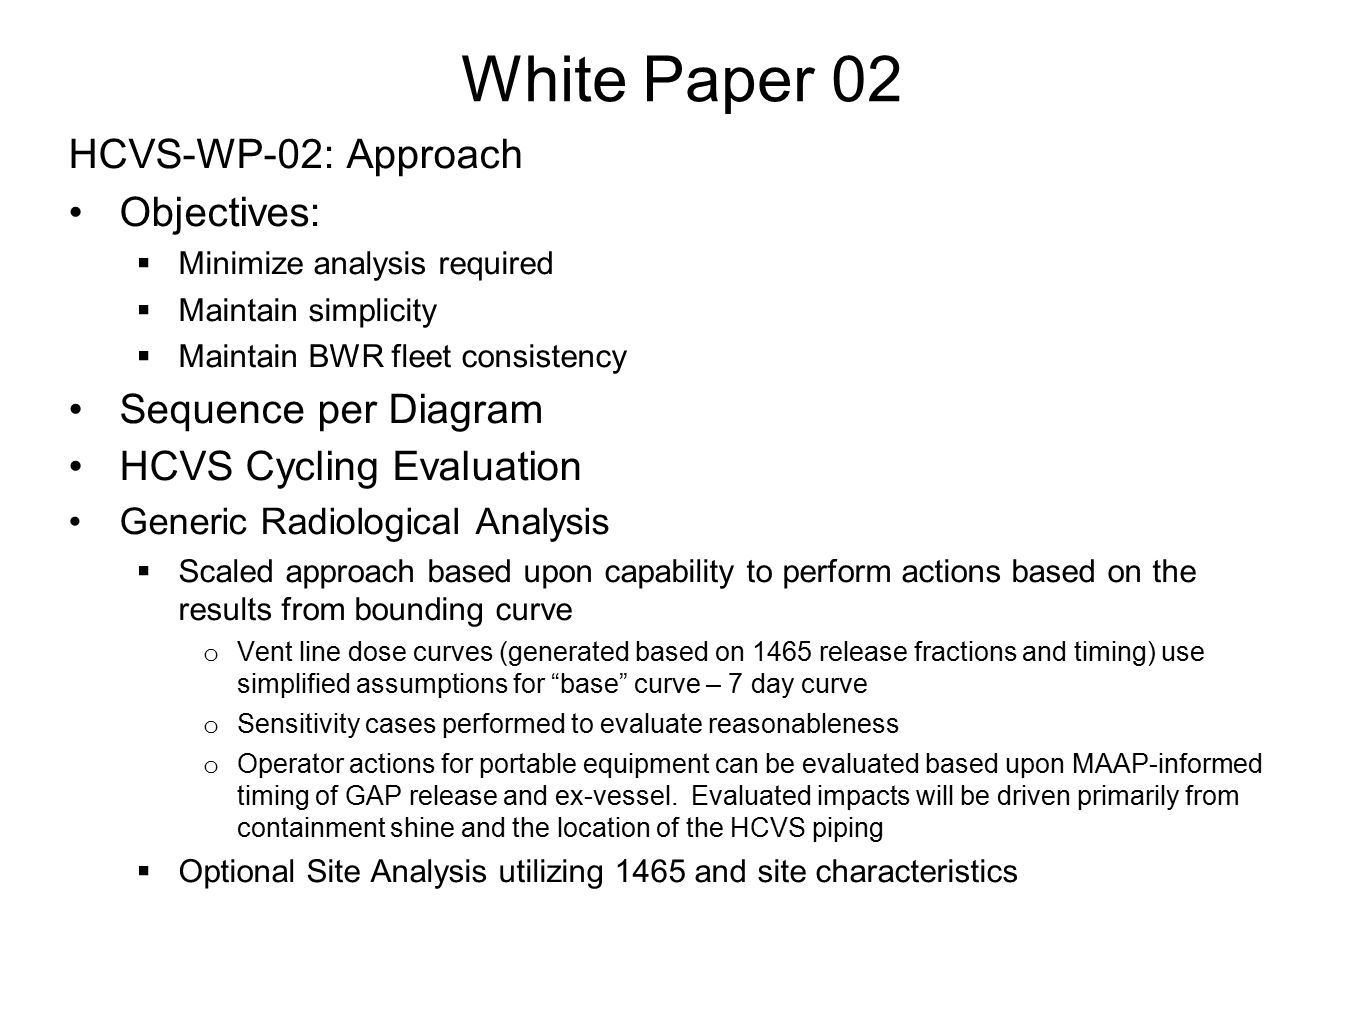 White Paper 02 HCVS-WP-02: Approach Objectives: Sequence per Diagram